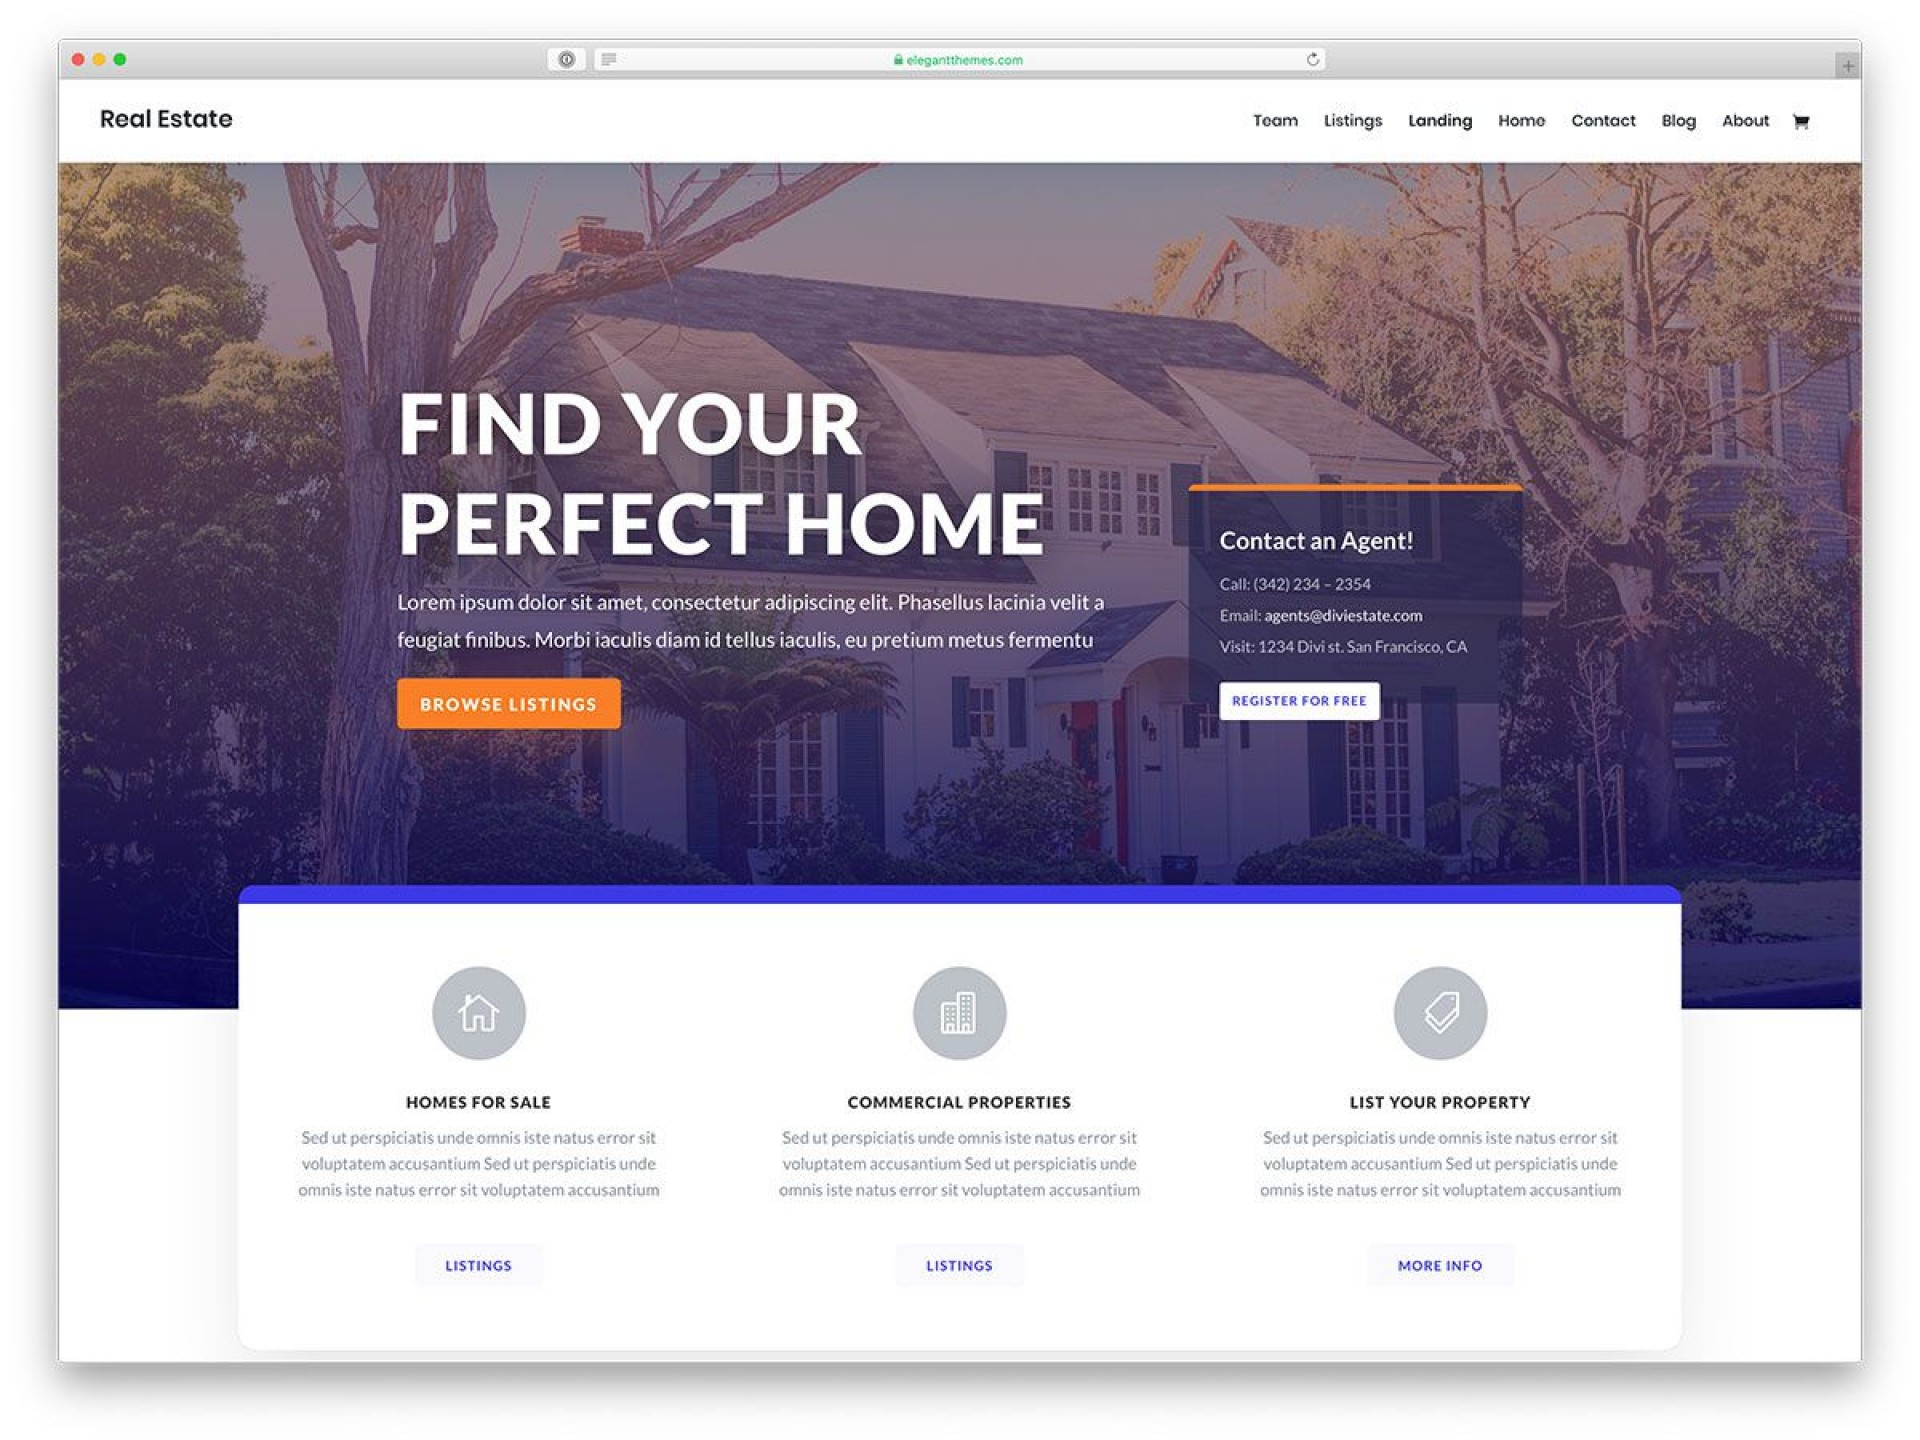 004 Phenomenal Real Estate Agent Website Template Picture  Templates Agency Responsive Free Download Company Web1920